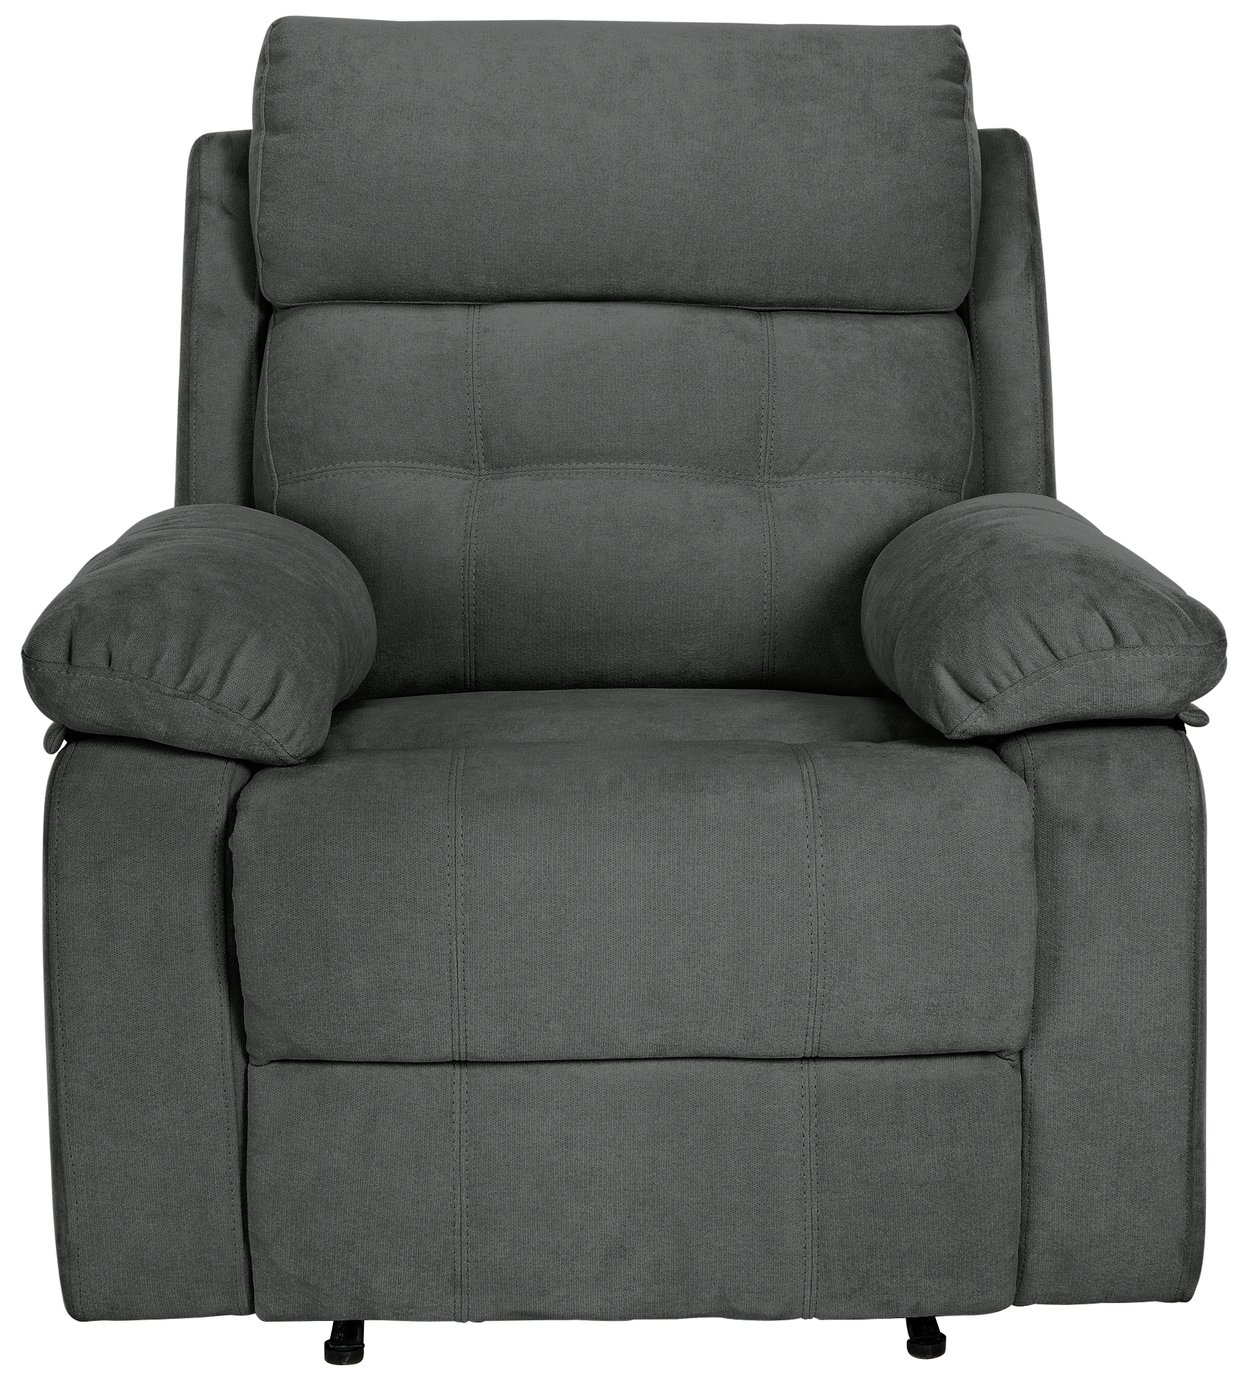 HOME June Fabric Manual Recliner Chair - Charcoal from HOME by Argos